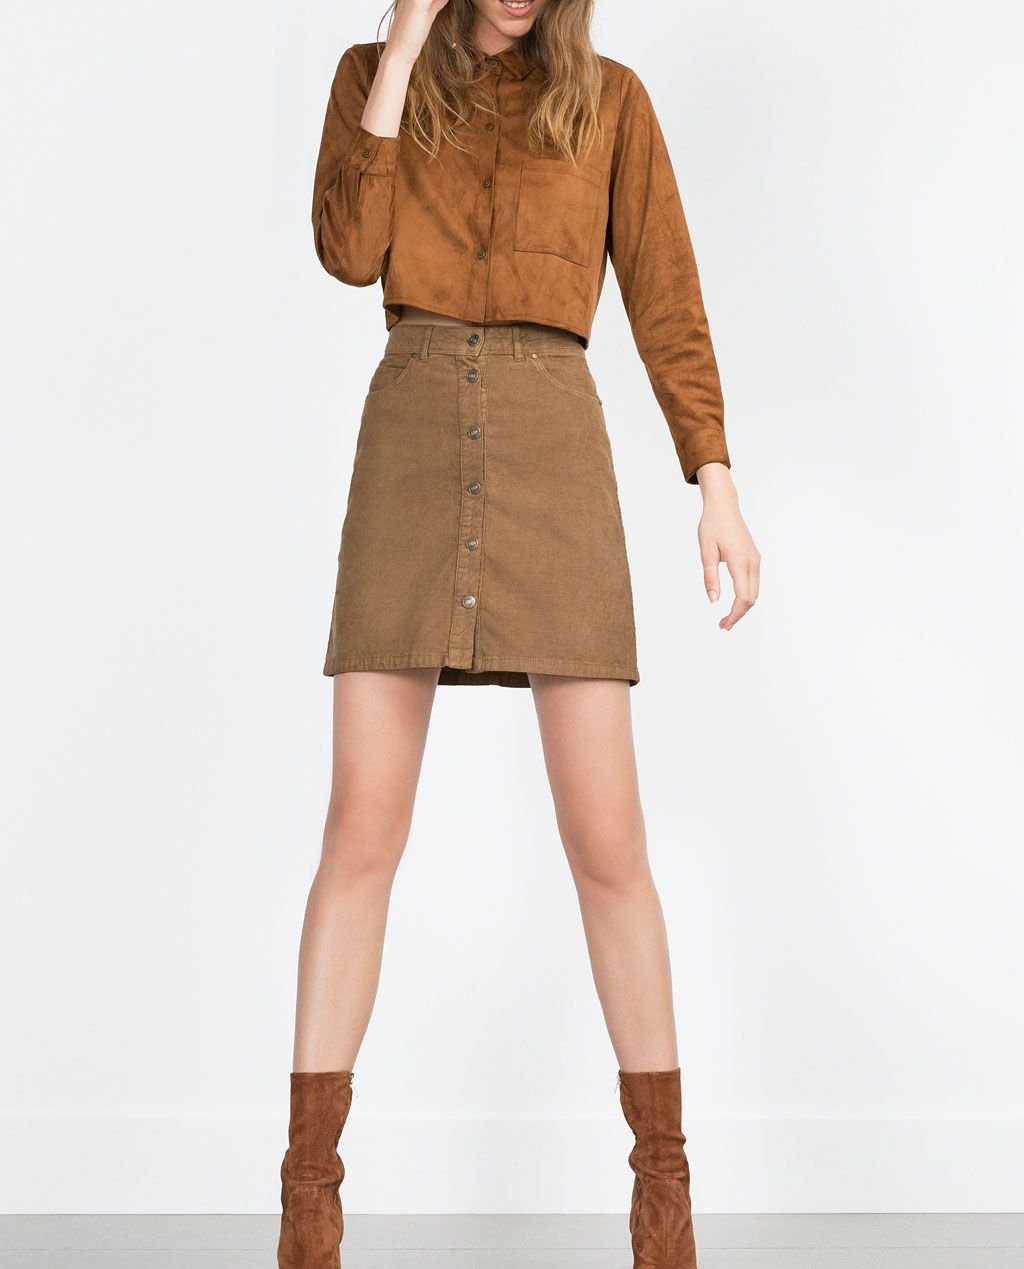 f1396d83ca5991 Image 1 of SHORT CORDUROY SKIRT from Zara | Fashion and Style in ...